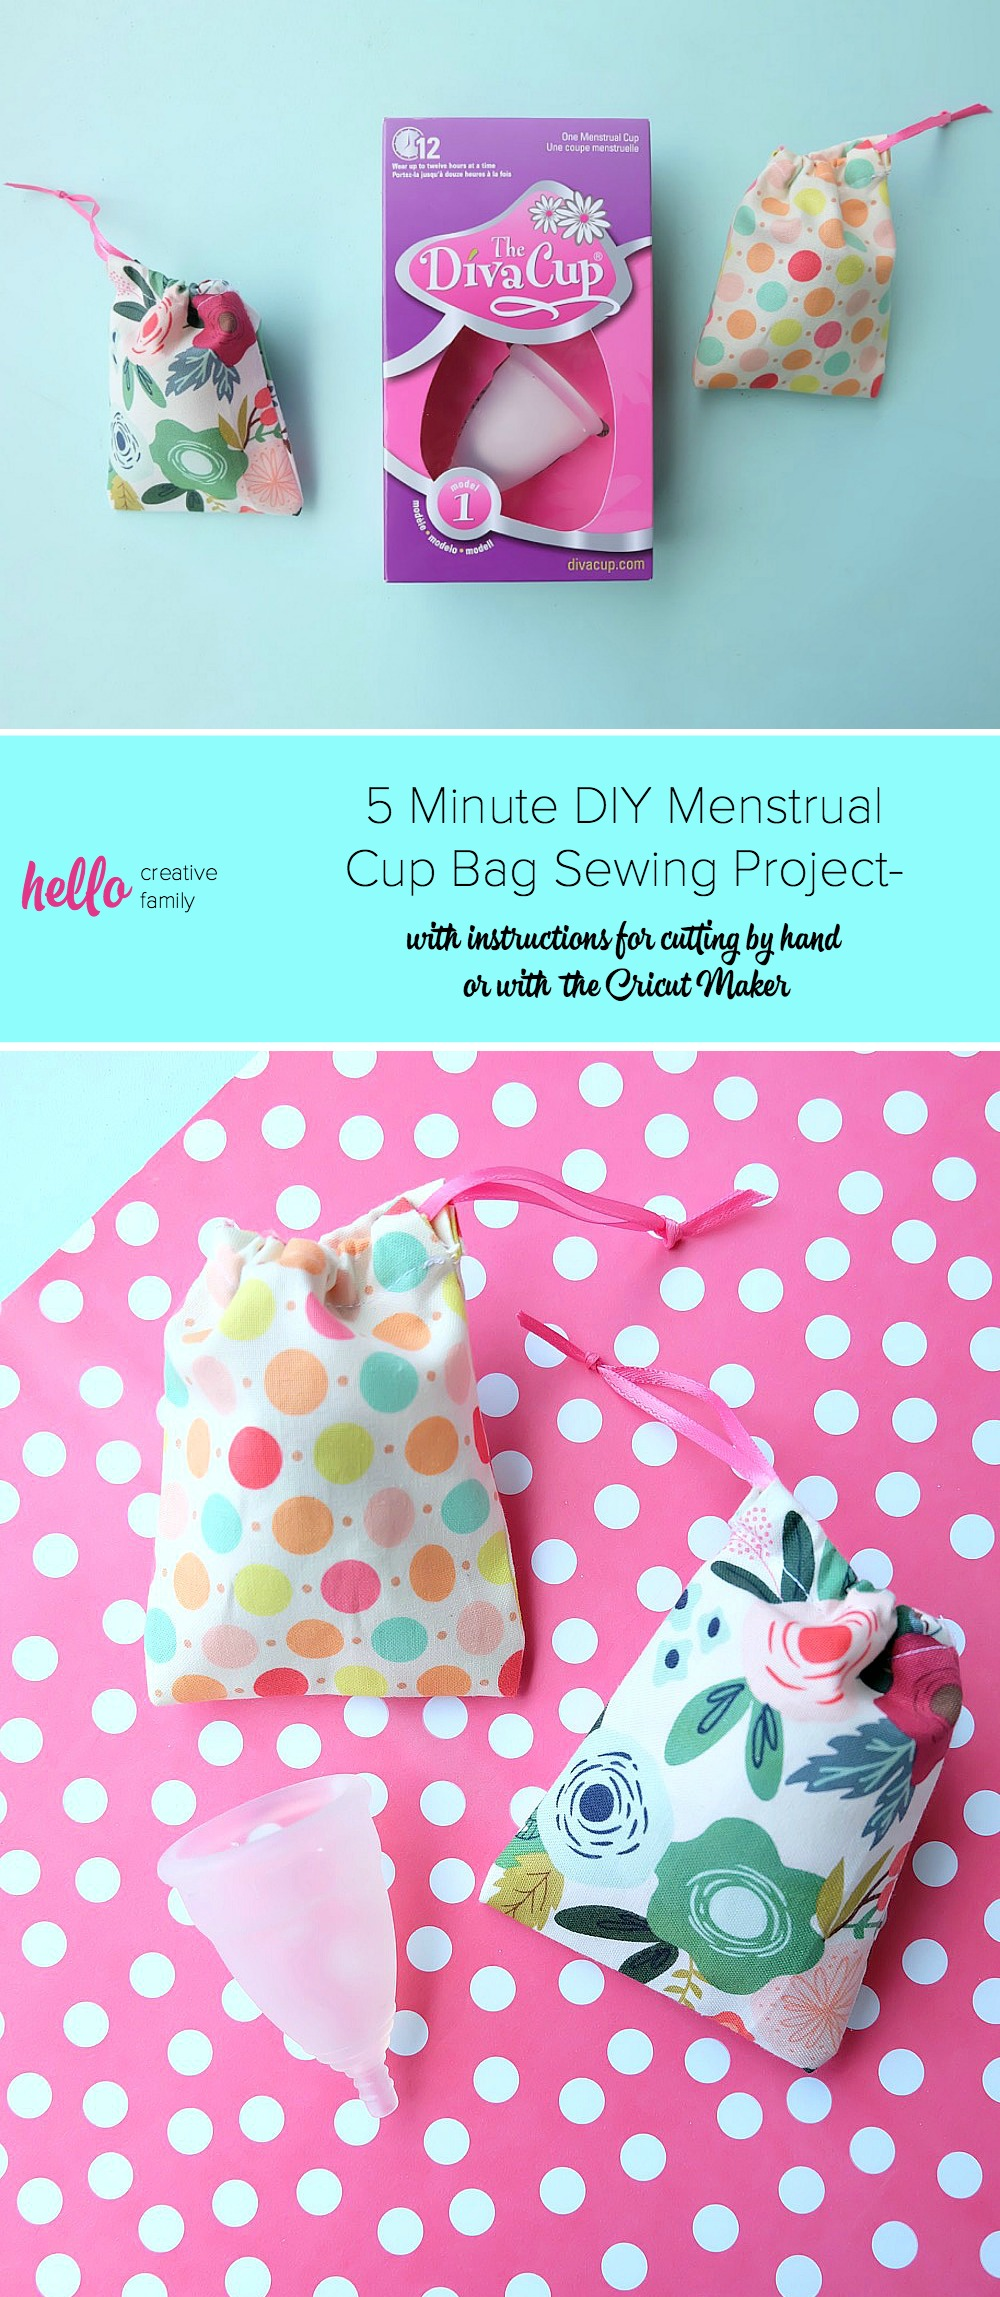 Make your period fun with our the cutest little period accessory! We have a 5 minute menstrual cup bag sewing project that makes the cutest little drawstring bag for your Diva Cup or other menstrual cup. The perfect fabric scrap project! It's quick and easy to make! Cut it by hand or with the Cricut Maker. Once you know how to make them change the sizes for fabric gift bags, gift card bags, jewelry bags and more! #Sewing #5minutesewingproject #Cricut #CricutMaker